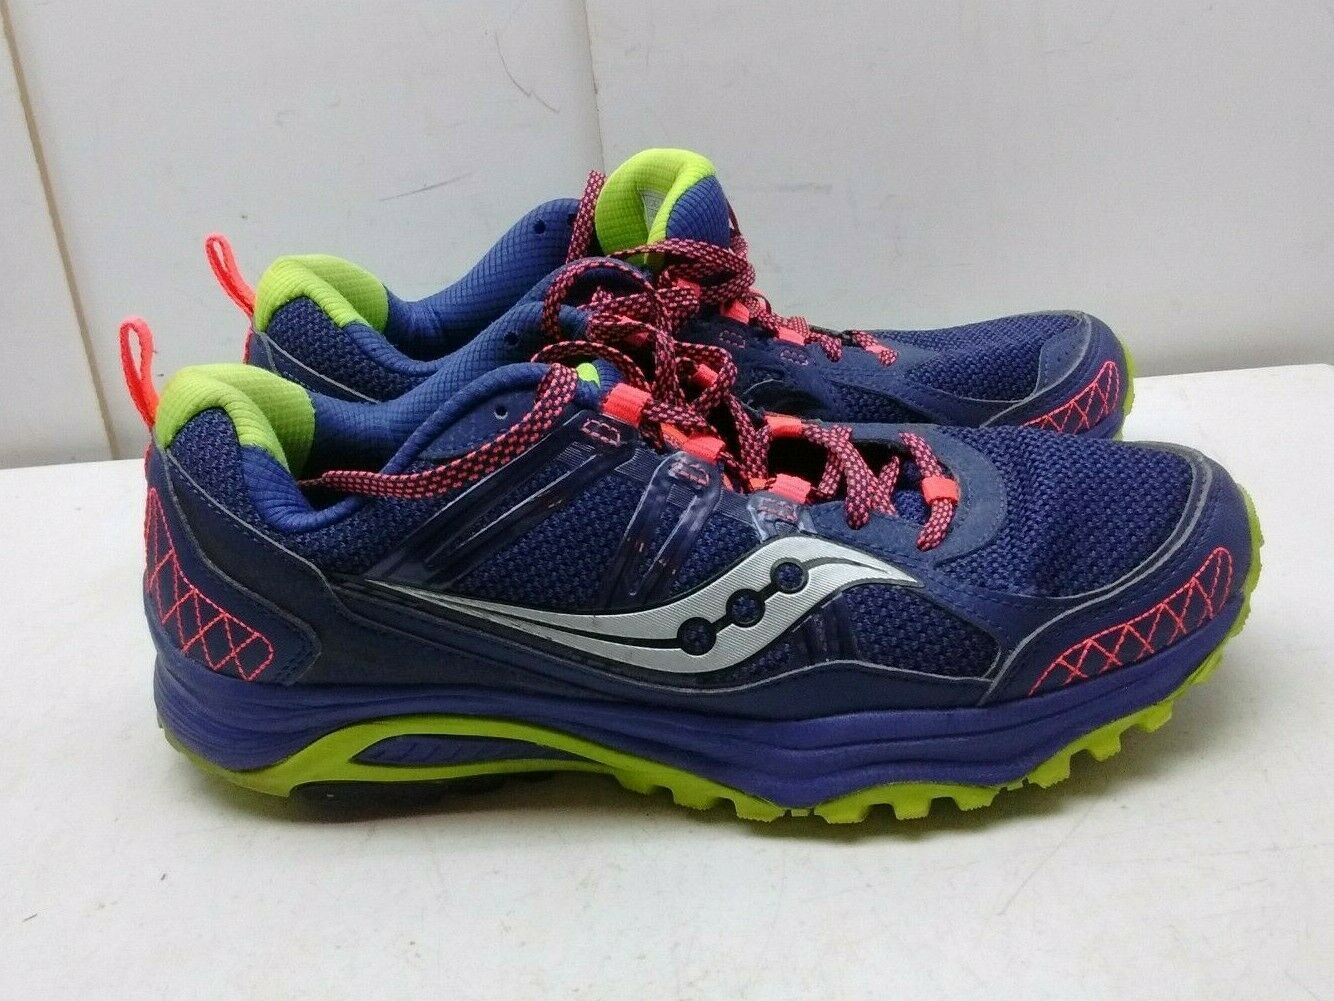 Saucony Excursion Purple Synthetic Athletic Sneaker Running Women's shoes 11M 43